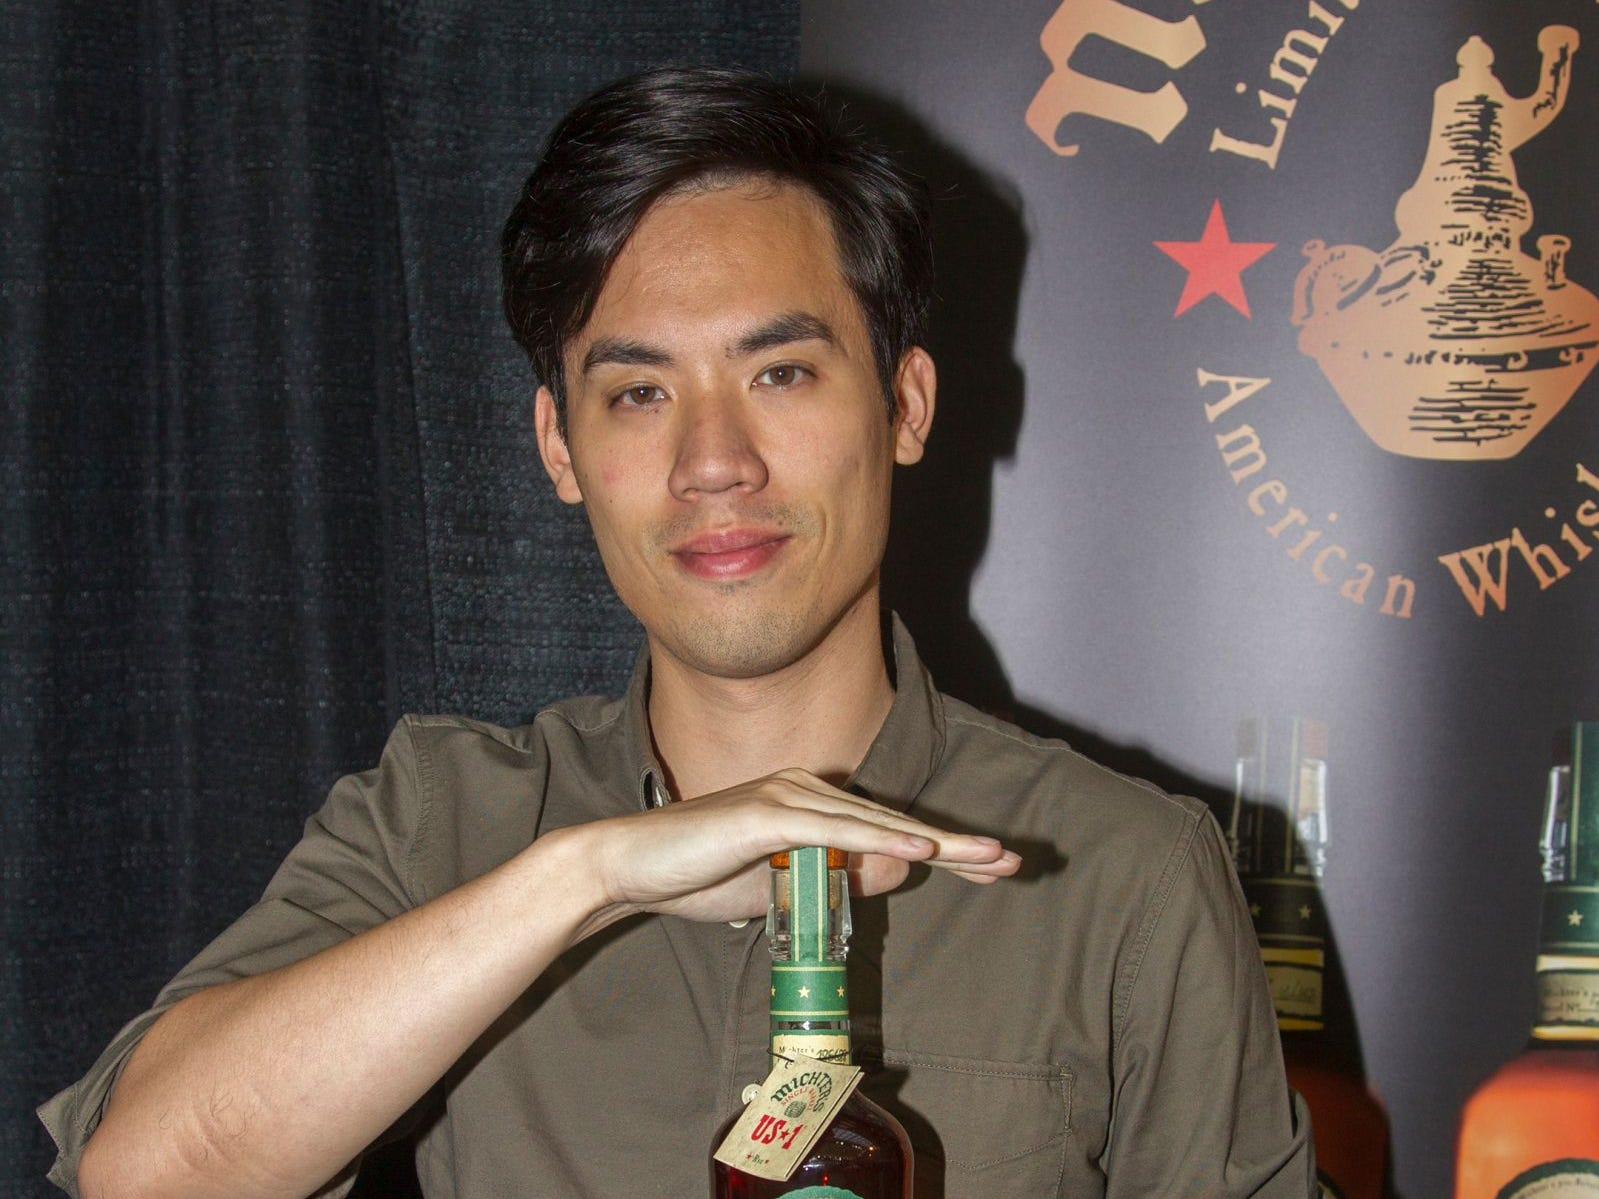 Michter's - Justin Ng. Jersey City Craft Distillery Fest at the Harborside Atrium featured more than 100 styles of spirits. Guests had the chance to taste craft-distilled spirits from moonshine, rum, cognac, whiskey, vodka, gin, tequila and more. 09/08/2018